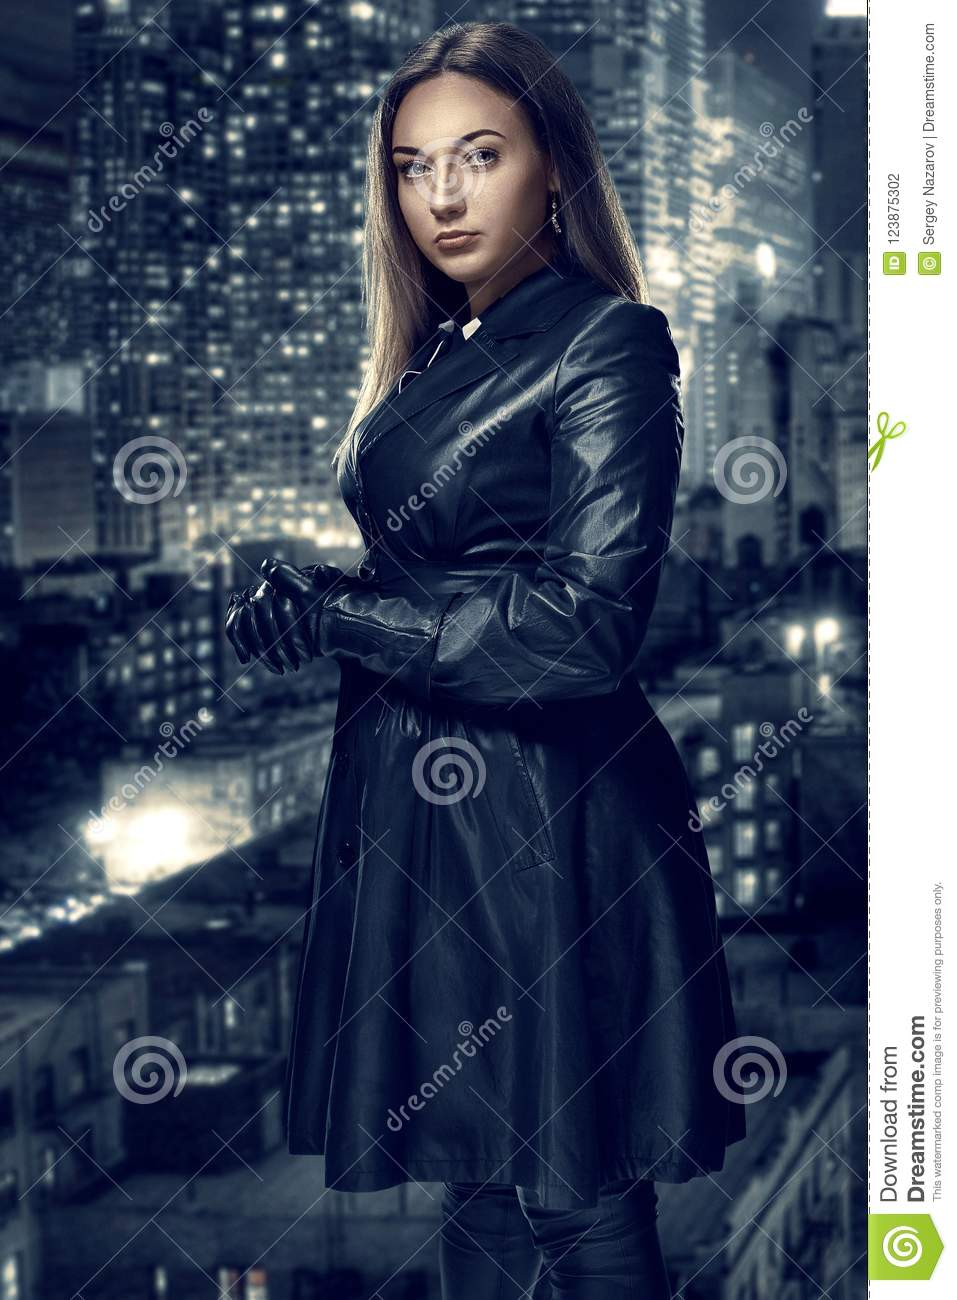 Retro portrait of inaccessible beautiful woman in black cloak stands against the background of the night city. Film noir